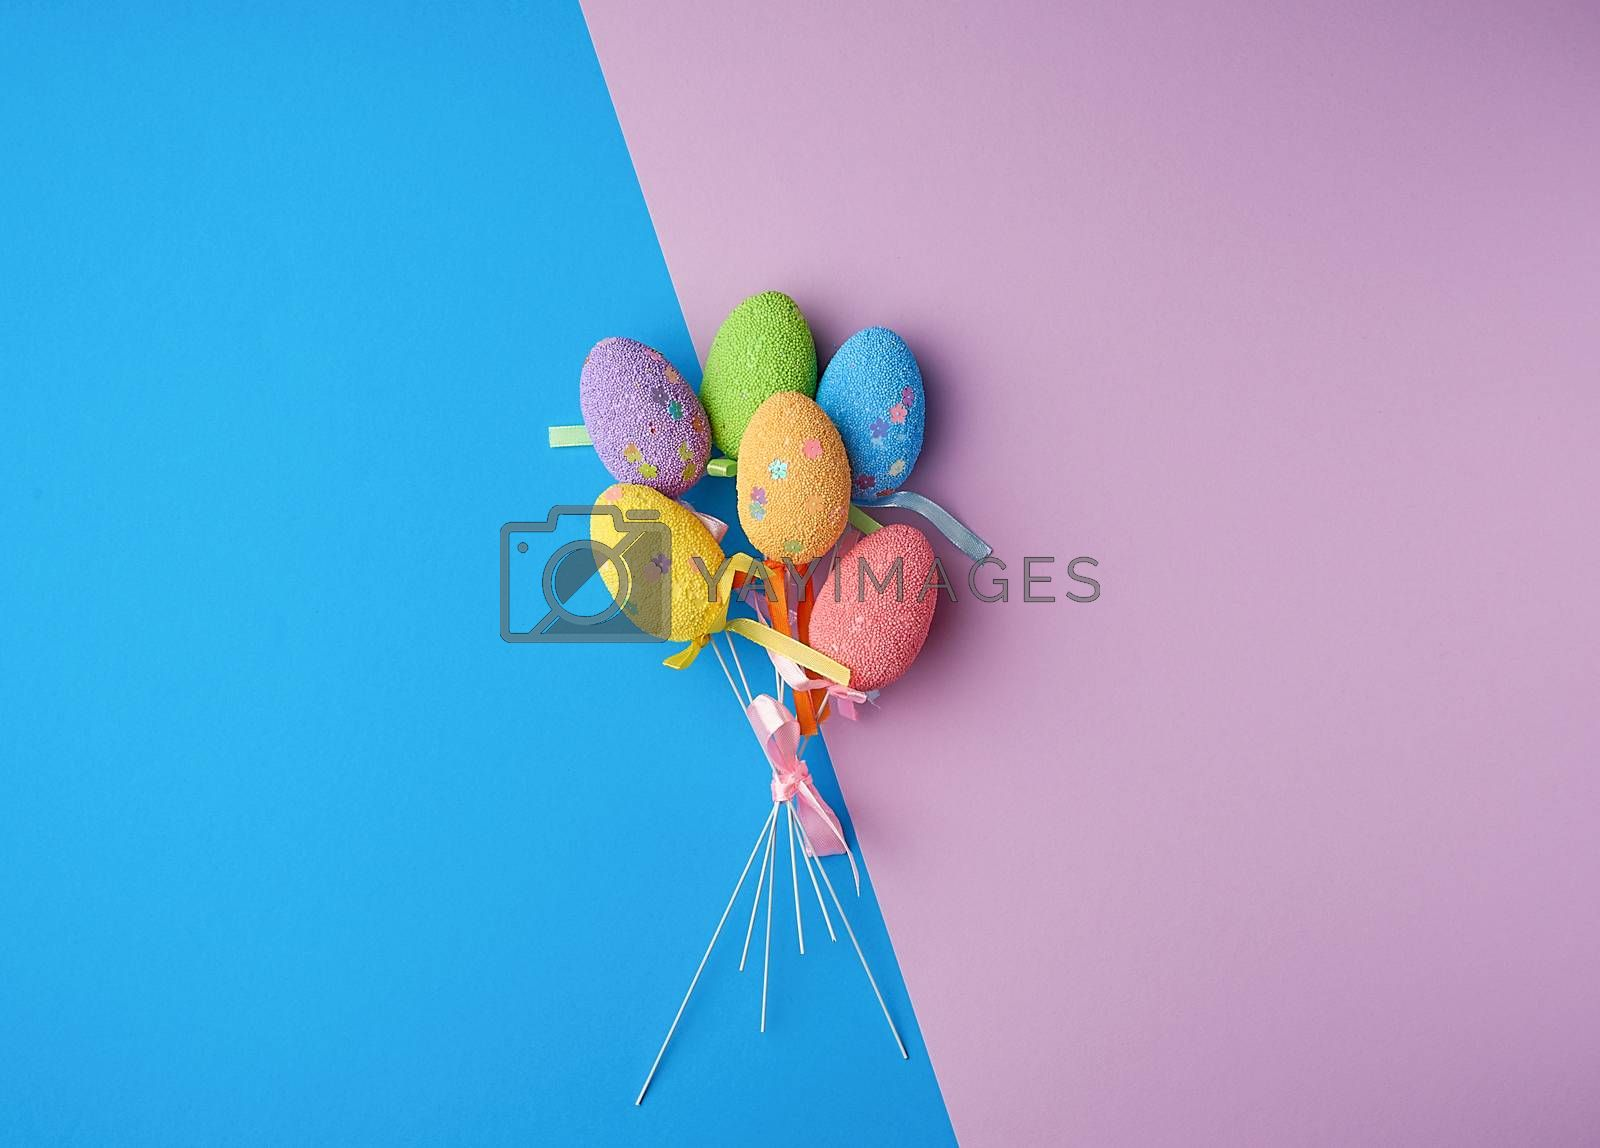 multi-colored decorative Easter eggs on sticks on a blue lilac b by ndanko